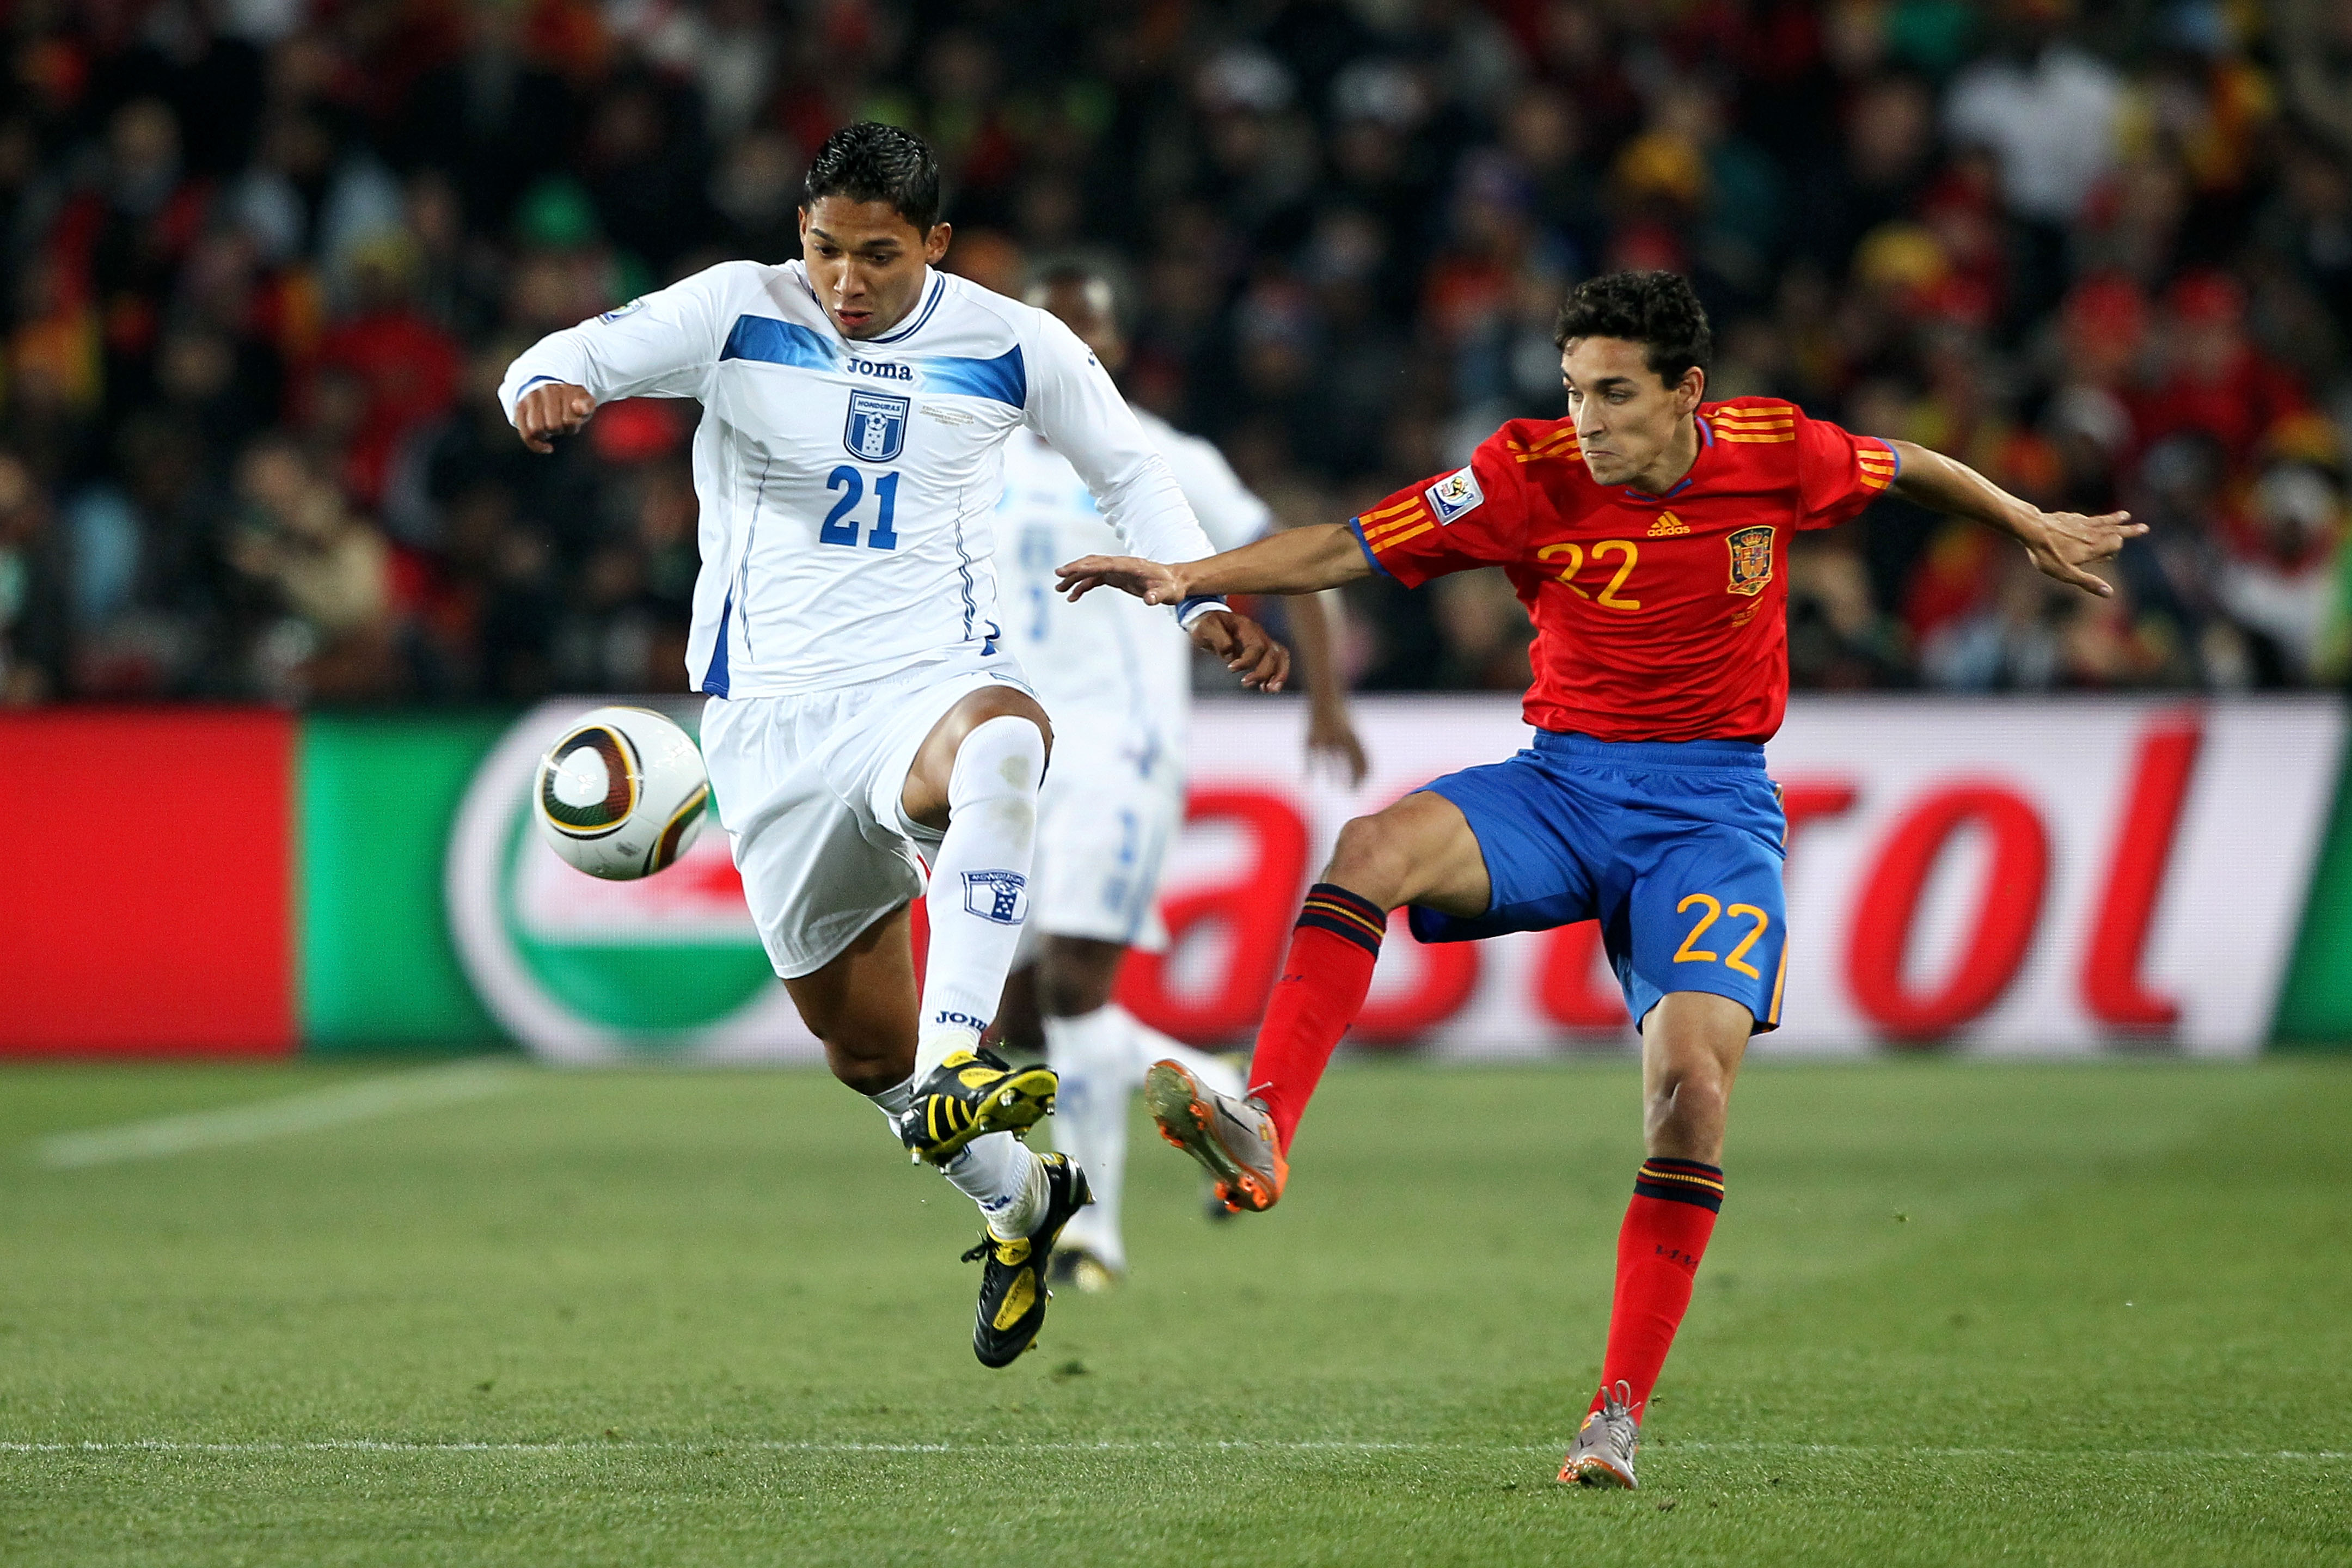 JOHANNESBURG, SOUTH AFRICA - JUNE 21:  Emilio Izaguirre of Honduras and Jesus Navas of Spain battle for the ball during the 2010 FIFA World Cup South Africa Group H match between Spain and Honduras at Ellis Park Stadium on June 21, 2010 in Johannesburg, S